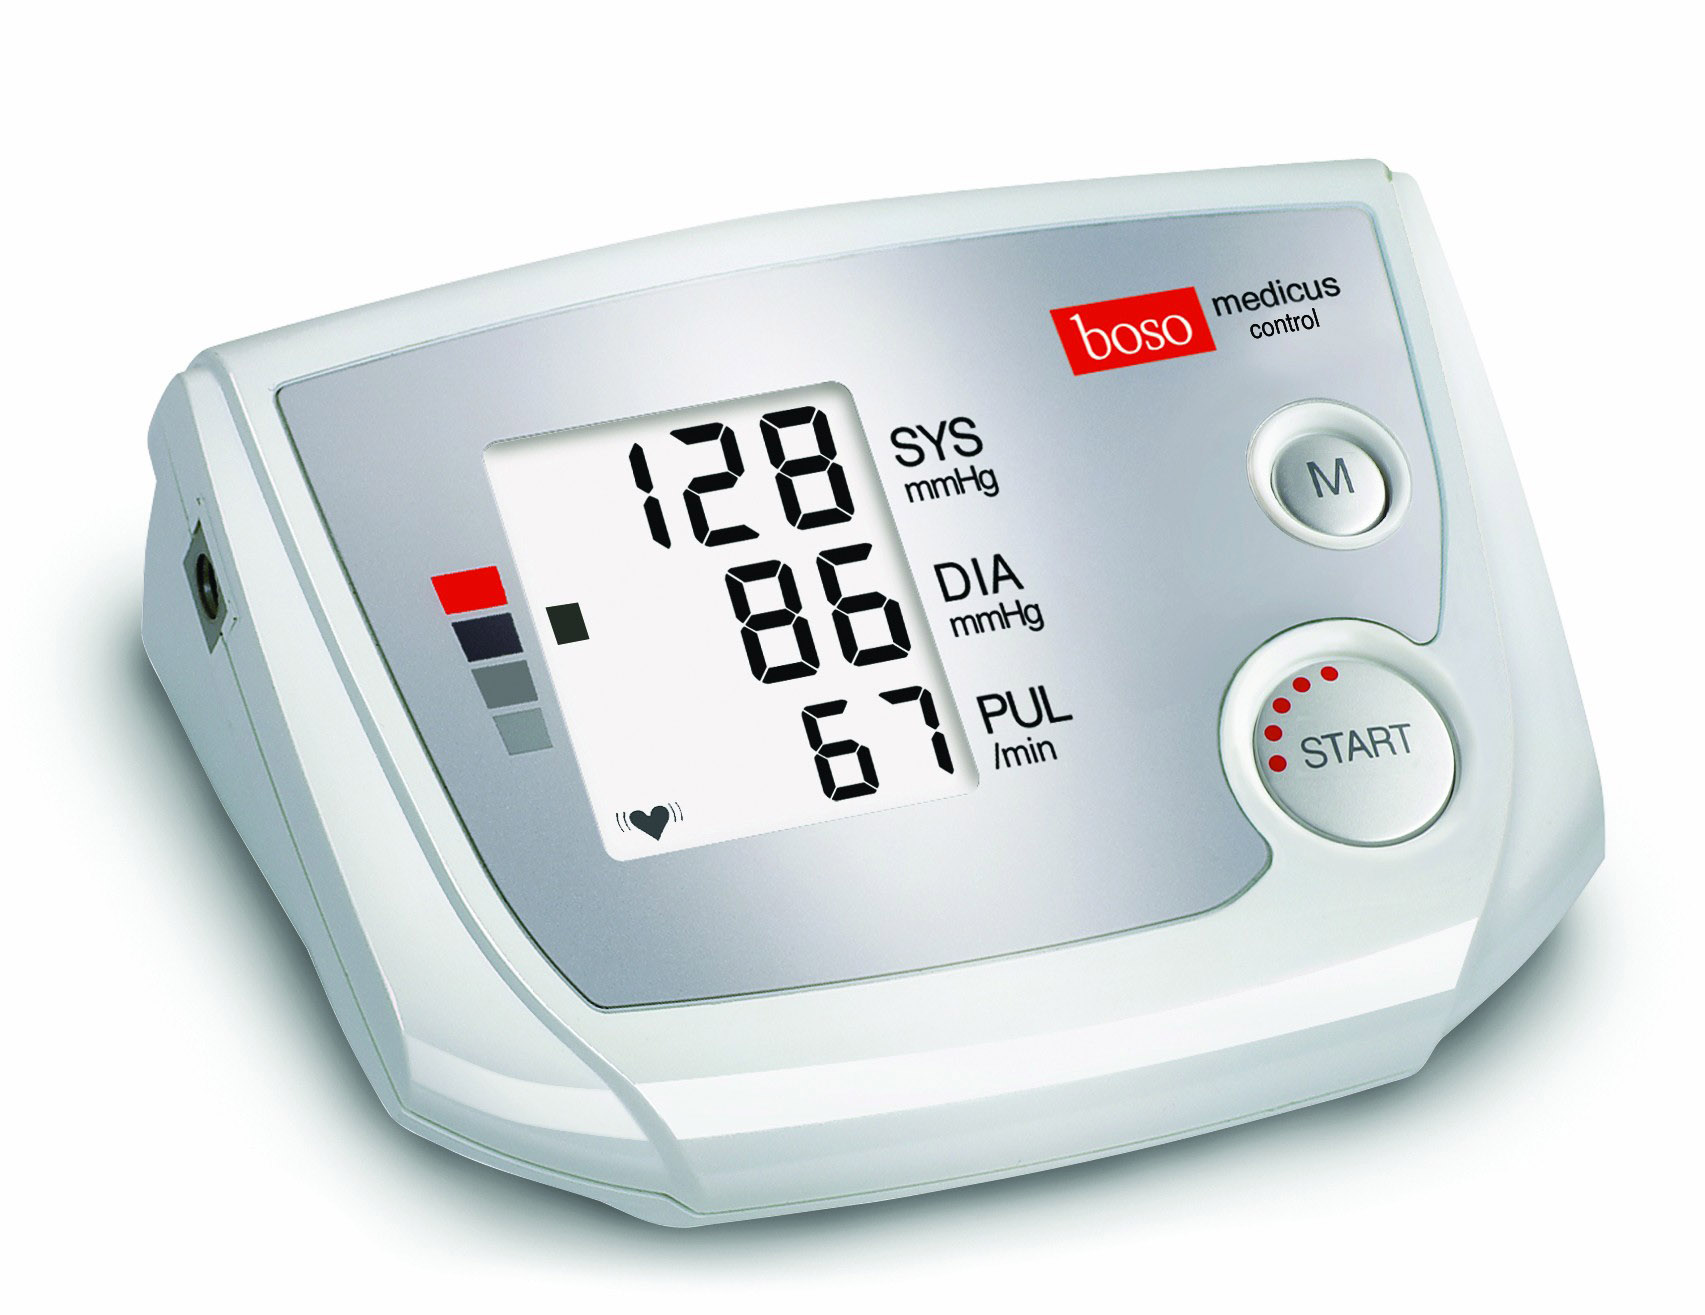 Image of BOSO Medicus Control